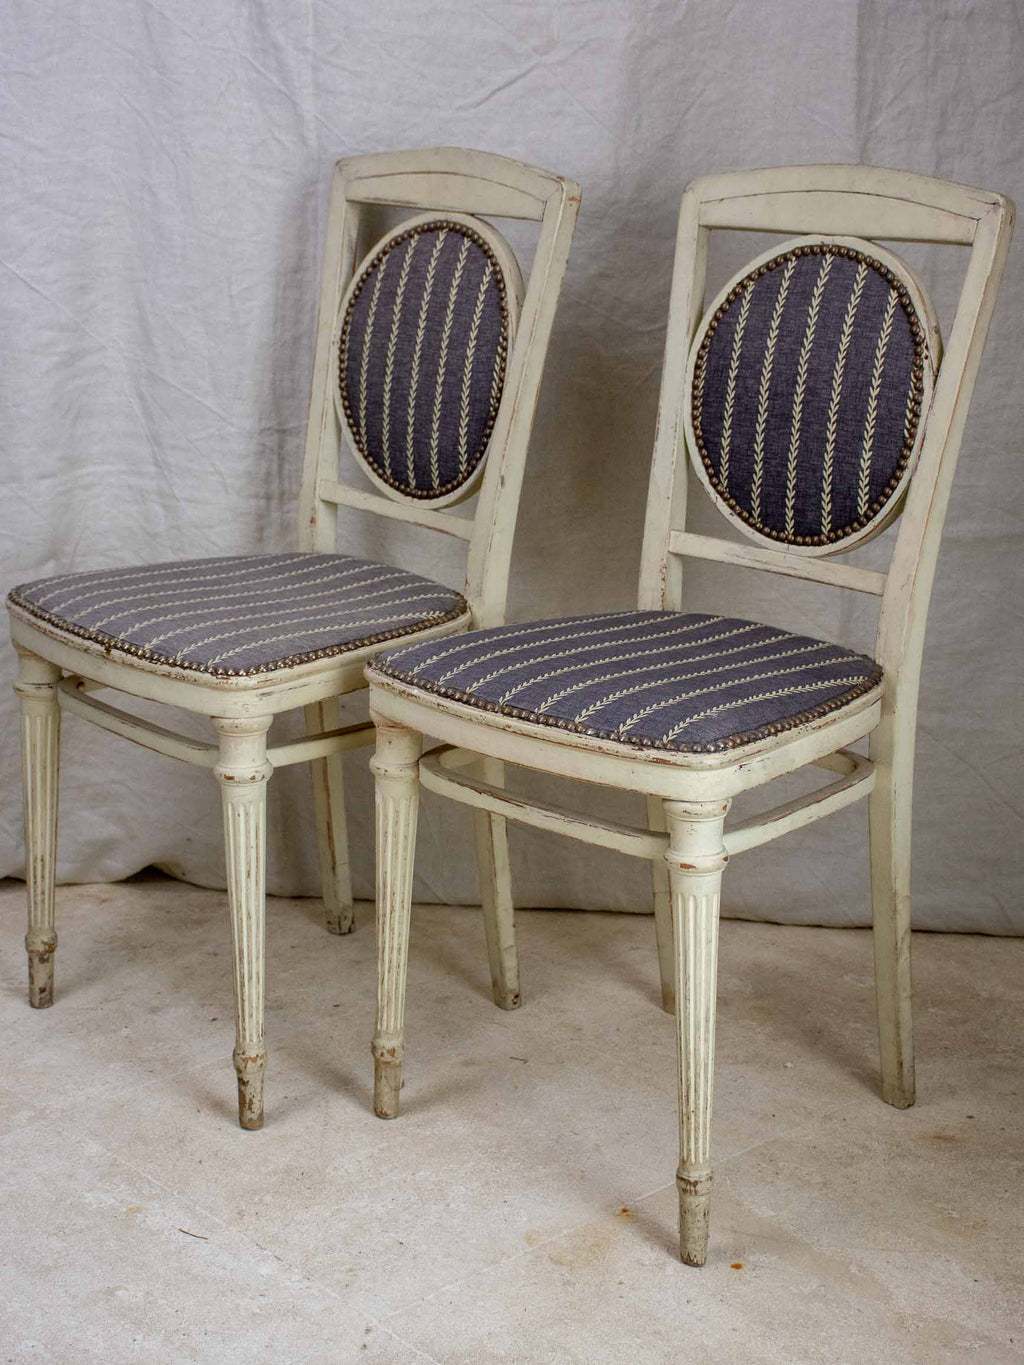 Pair of Directoire style chairs